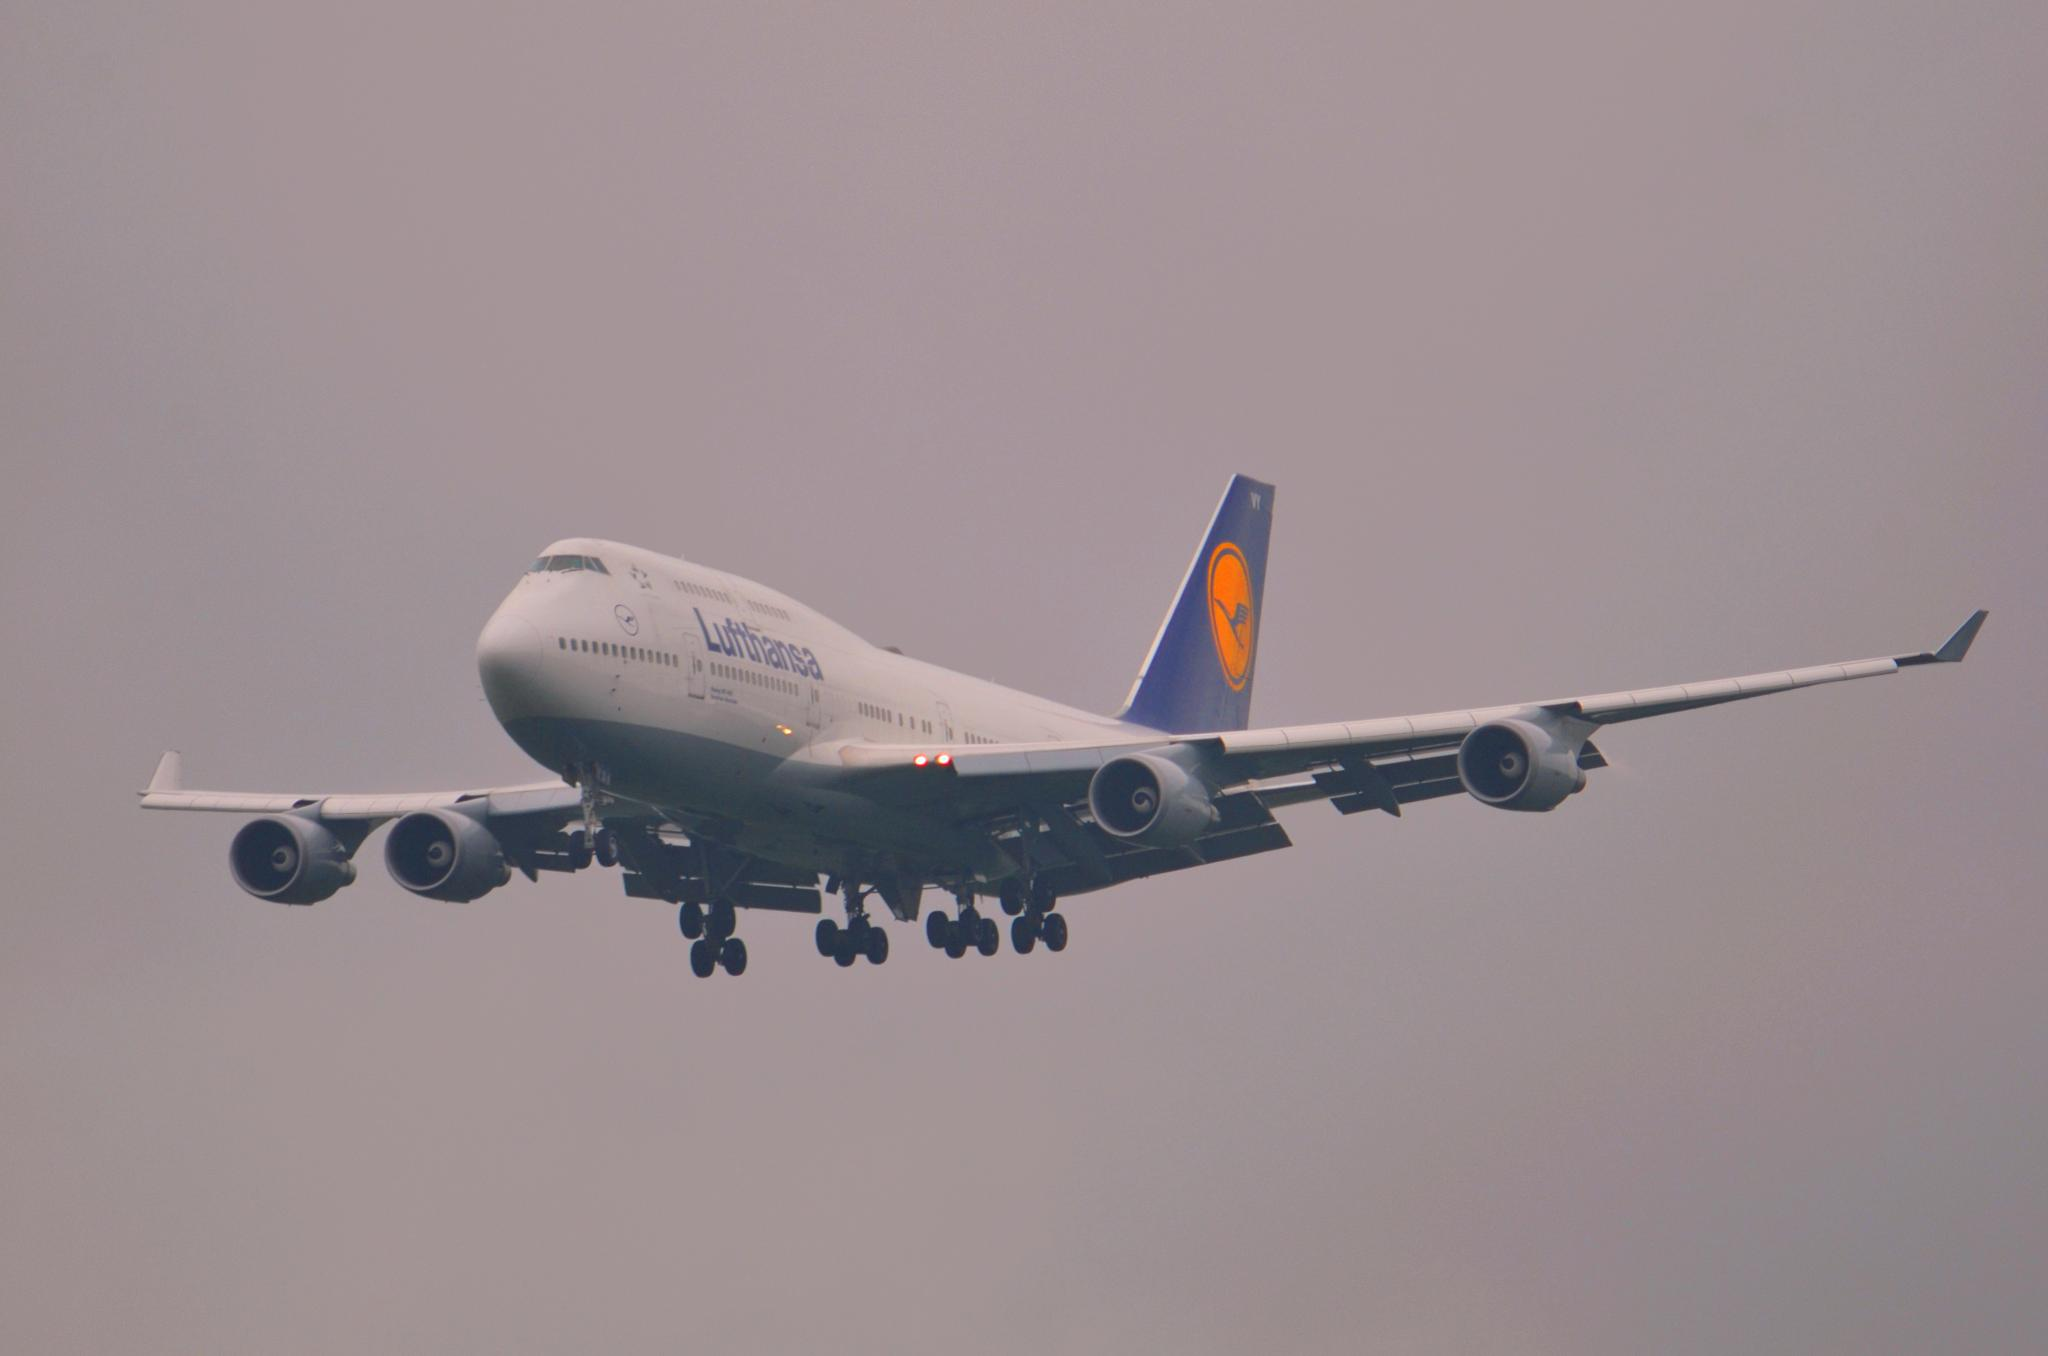 Short landing at FRA Airport for B744 D-ABVY. by jarjar-binks.6518